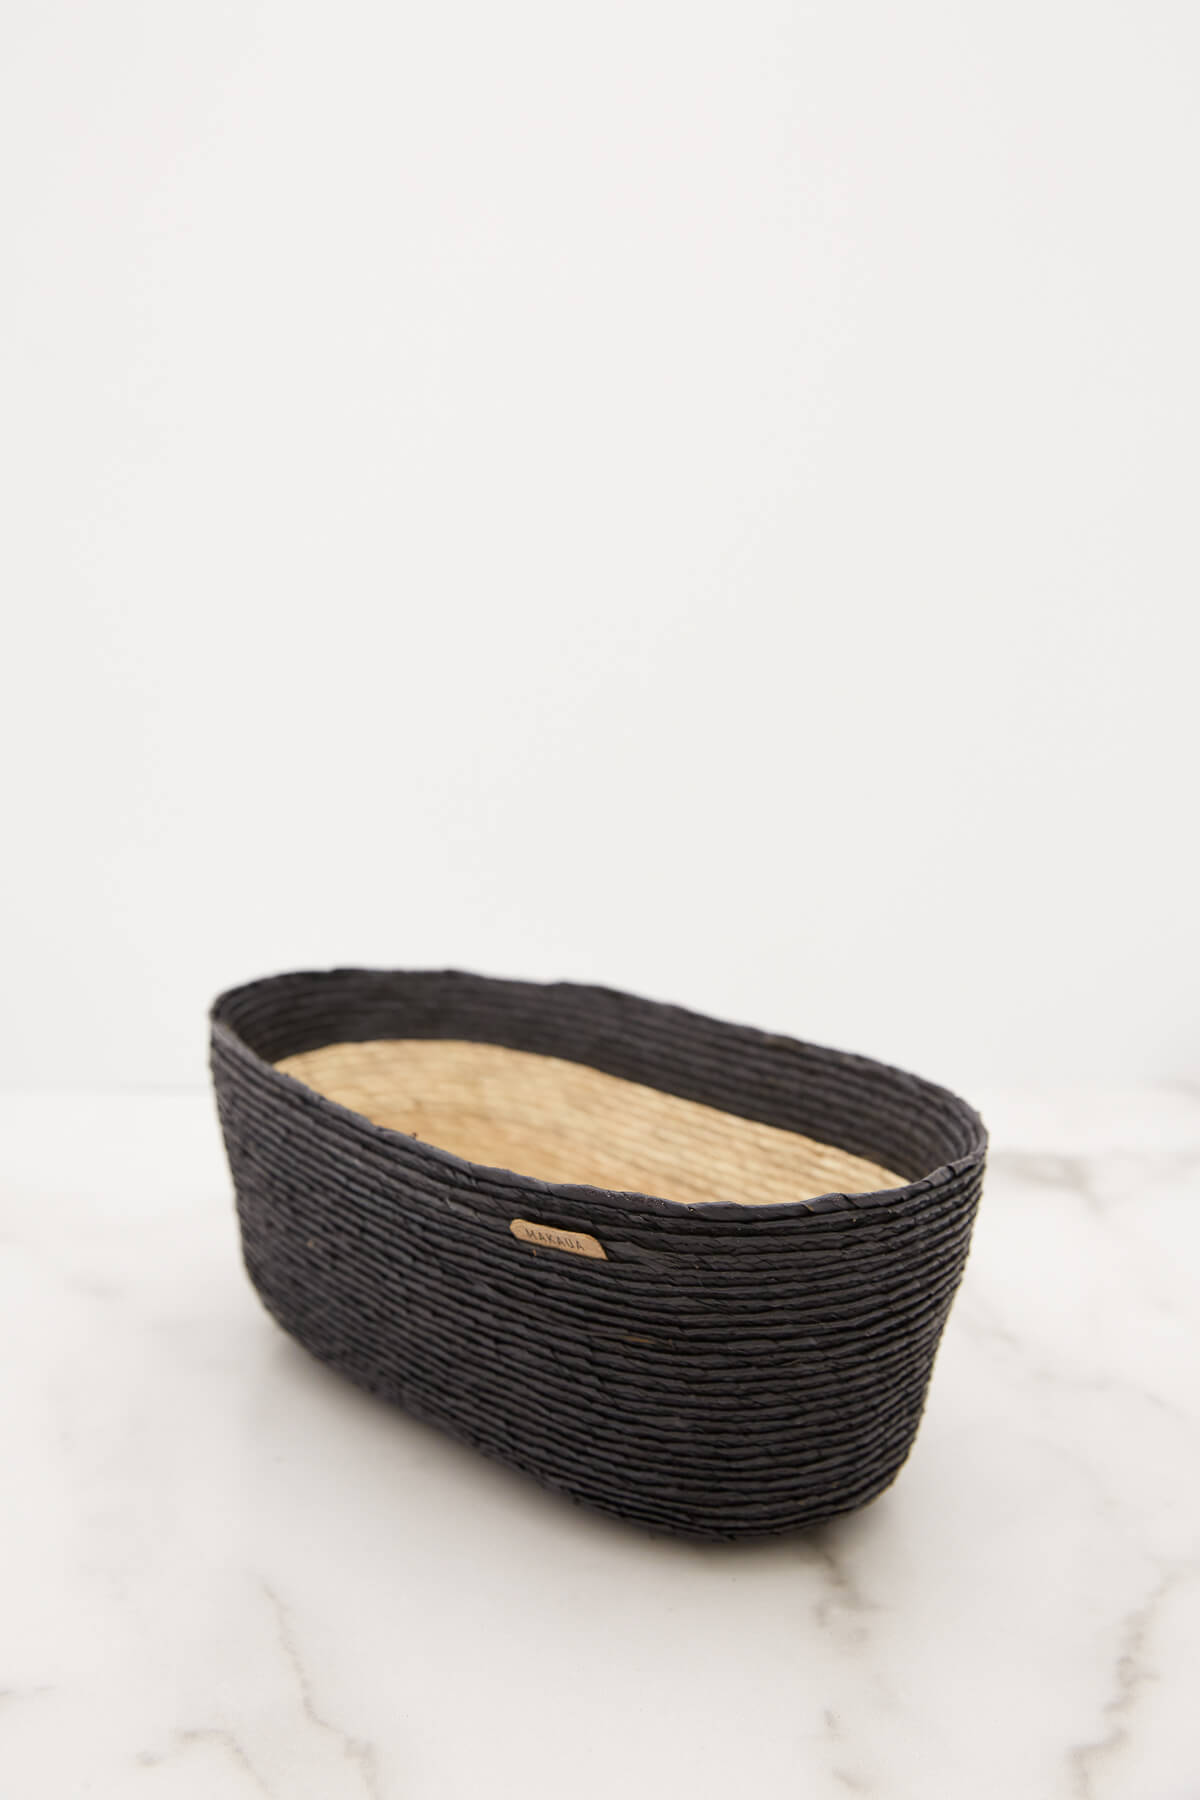 Makaua Small Oval Basket